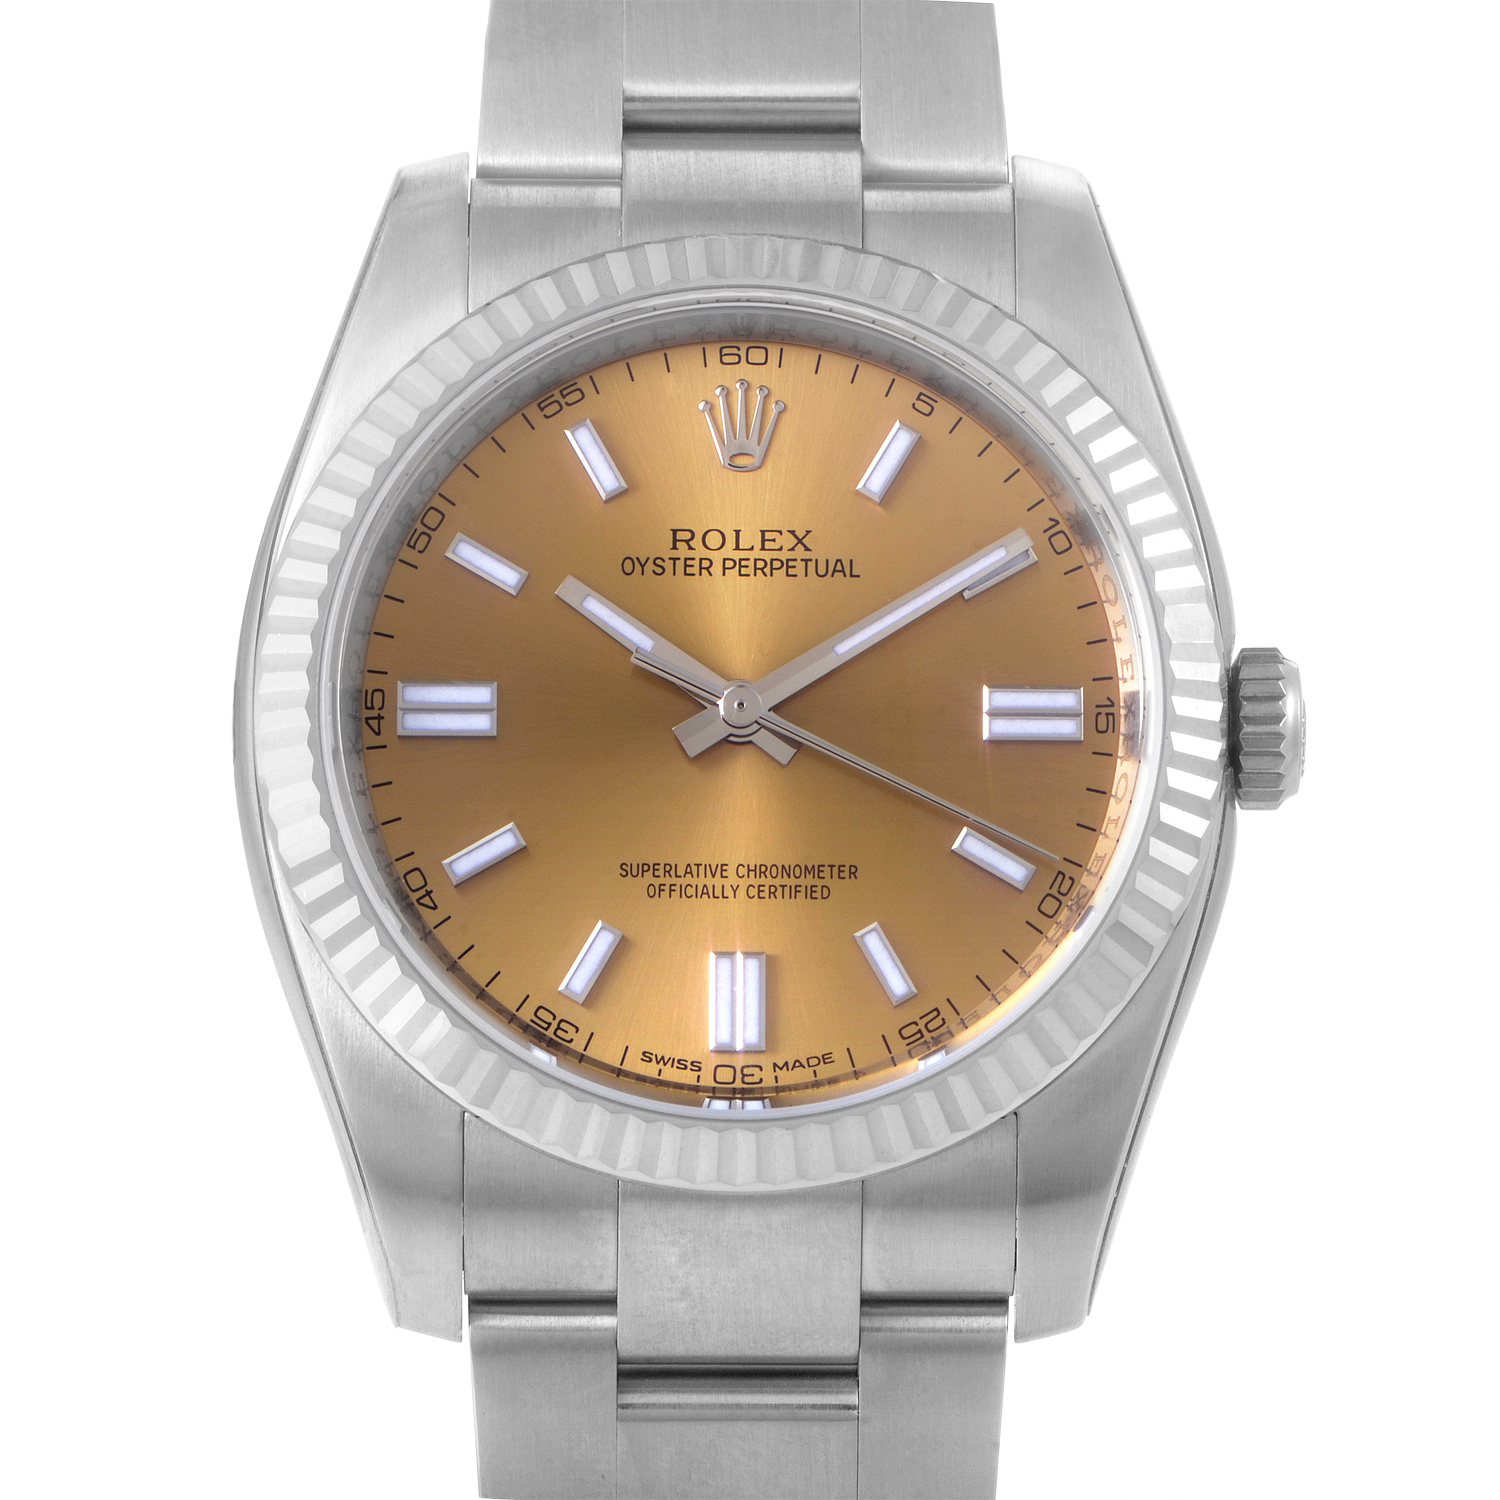 Rolex Oyster Perpetual Watch 116034